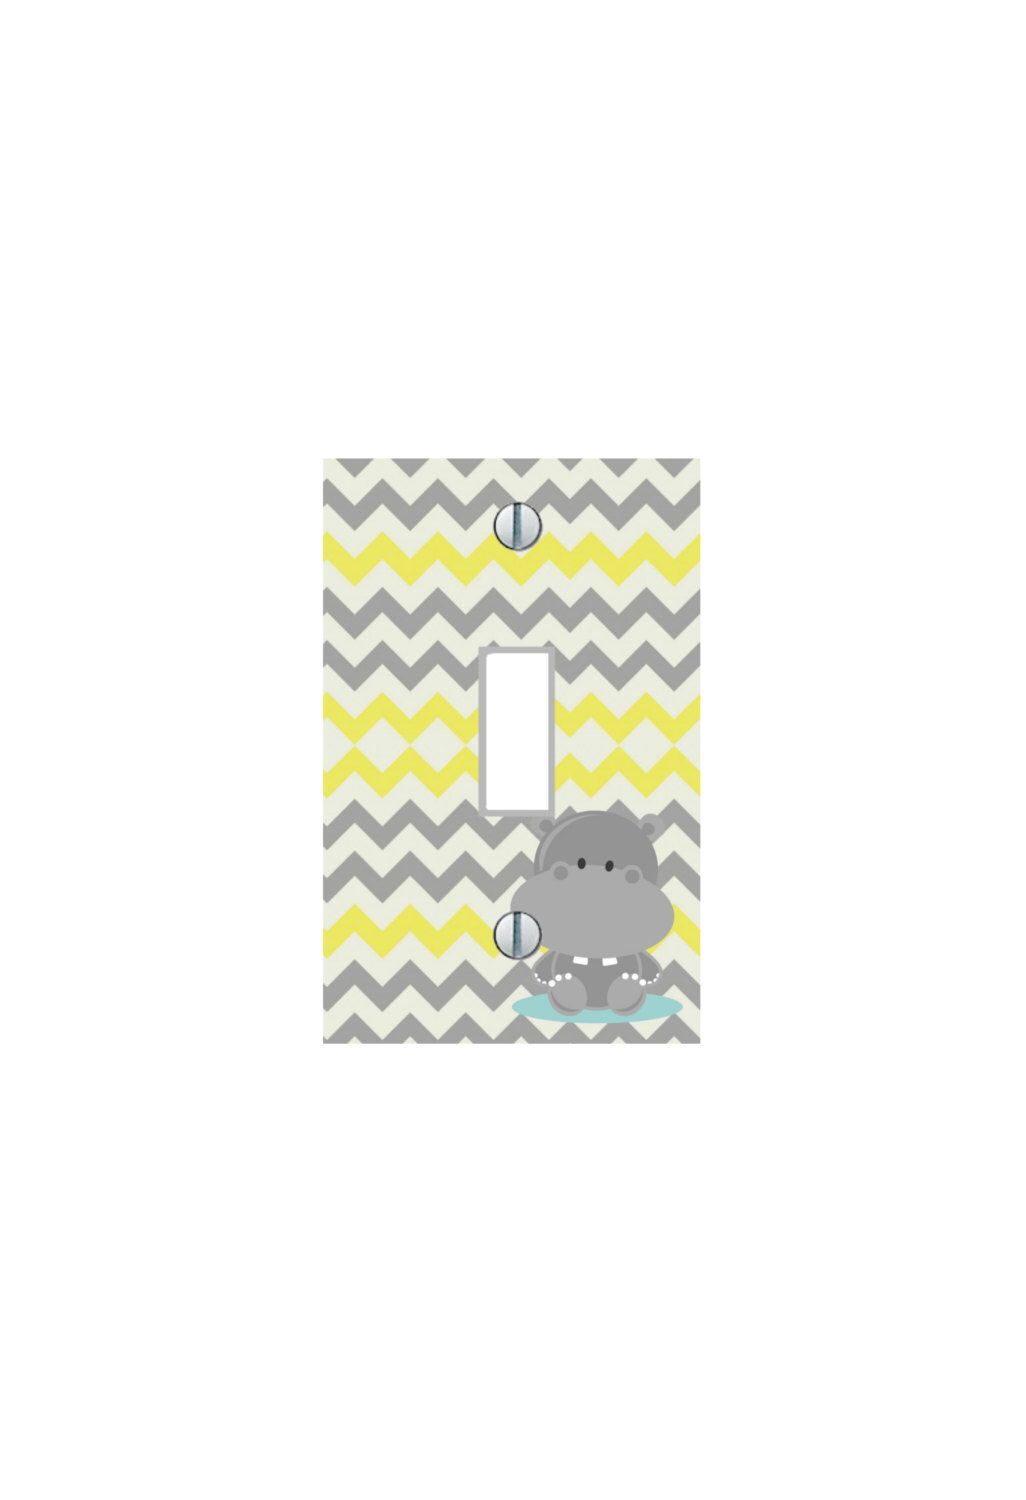 Magnificent Pin By Meryssa Downer On Baby Yellow Chevron Switch Plate Interior Design Ideas Truasarkarijobsexamcom